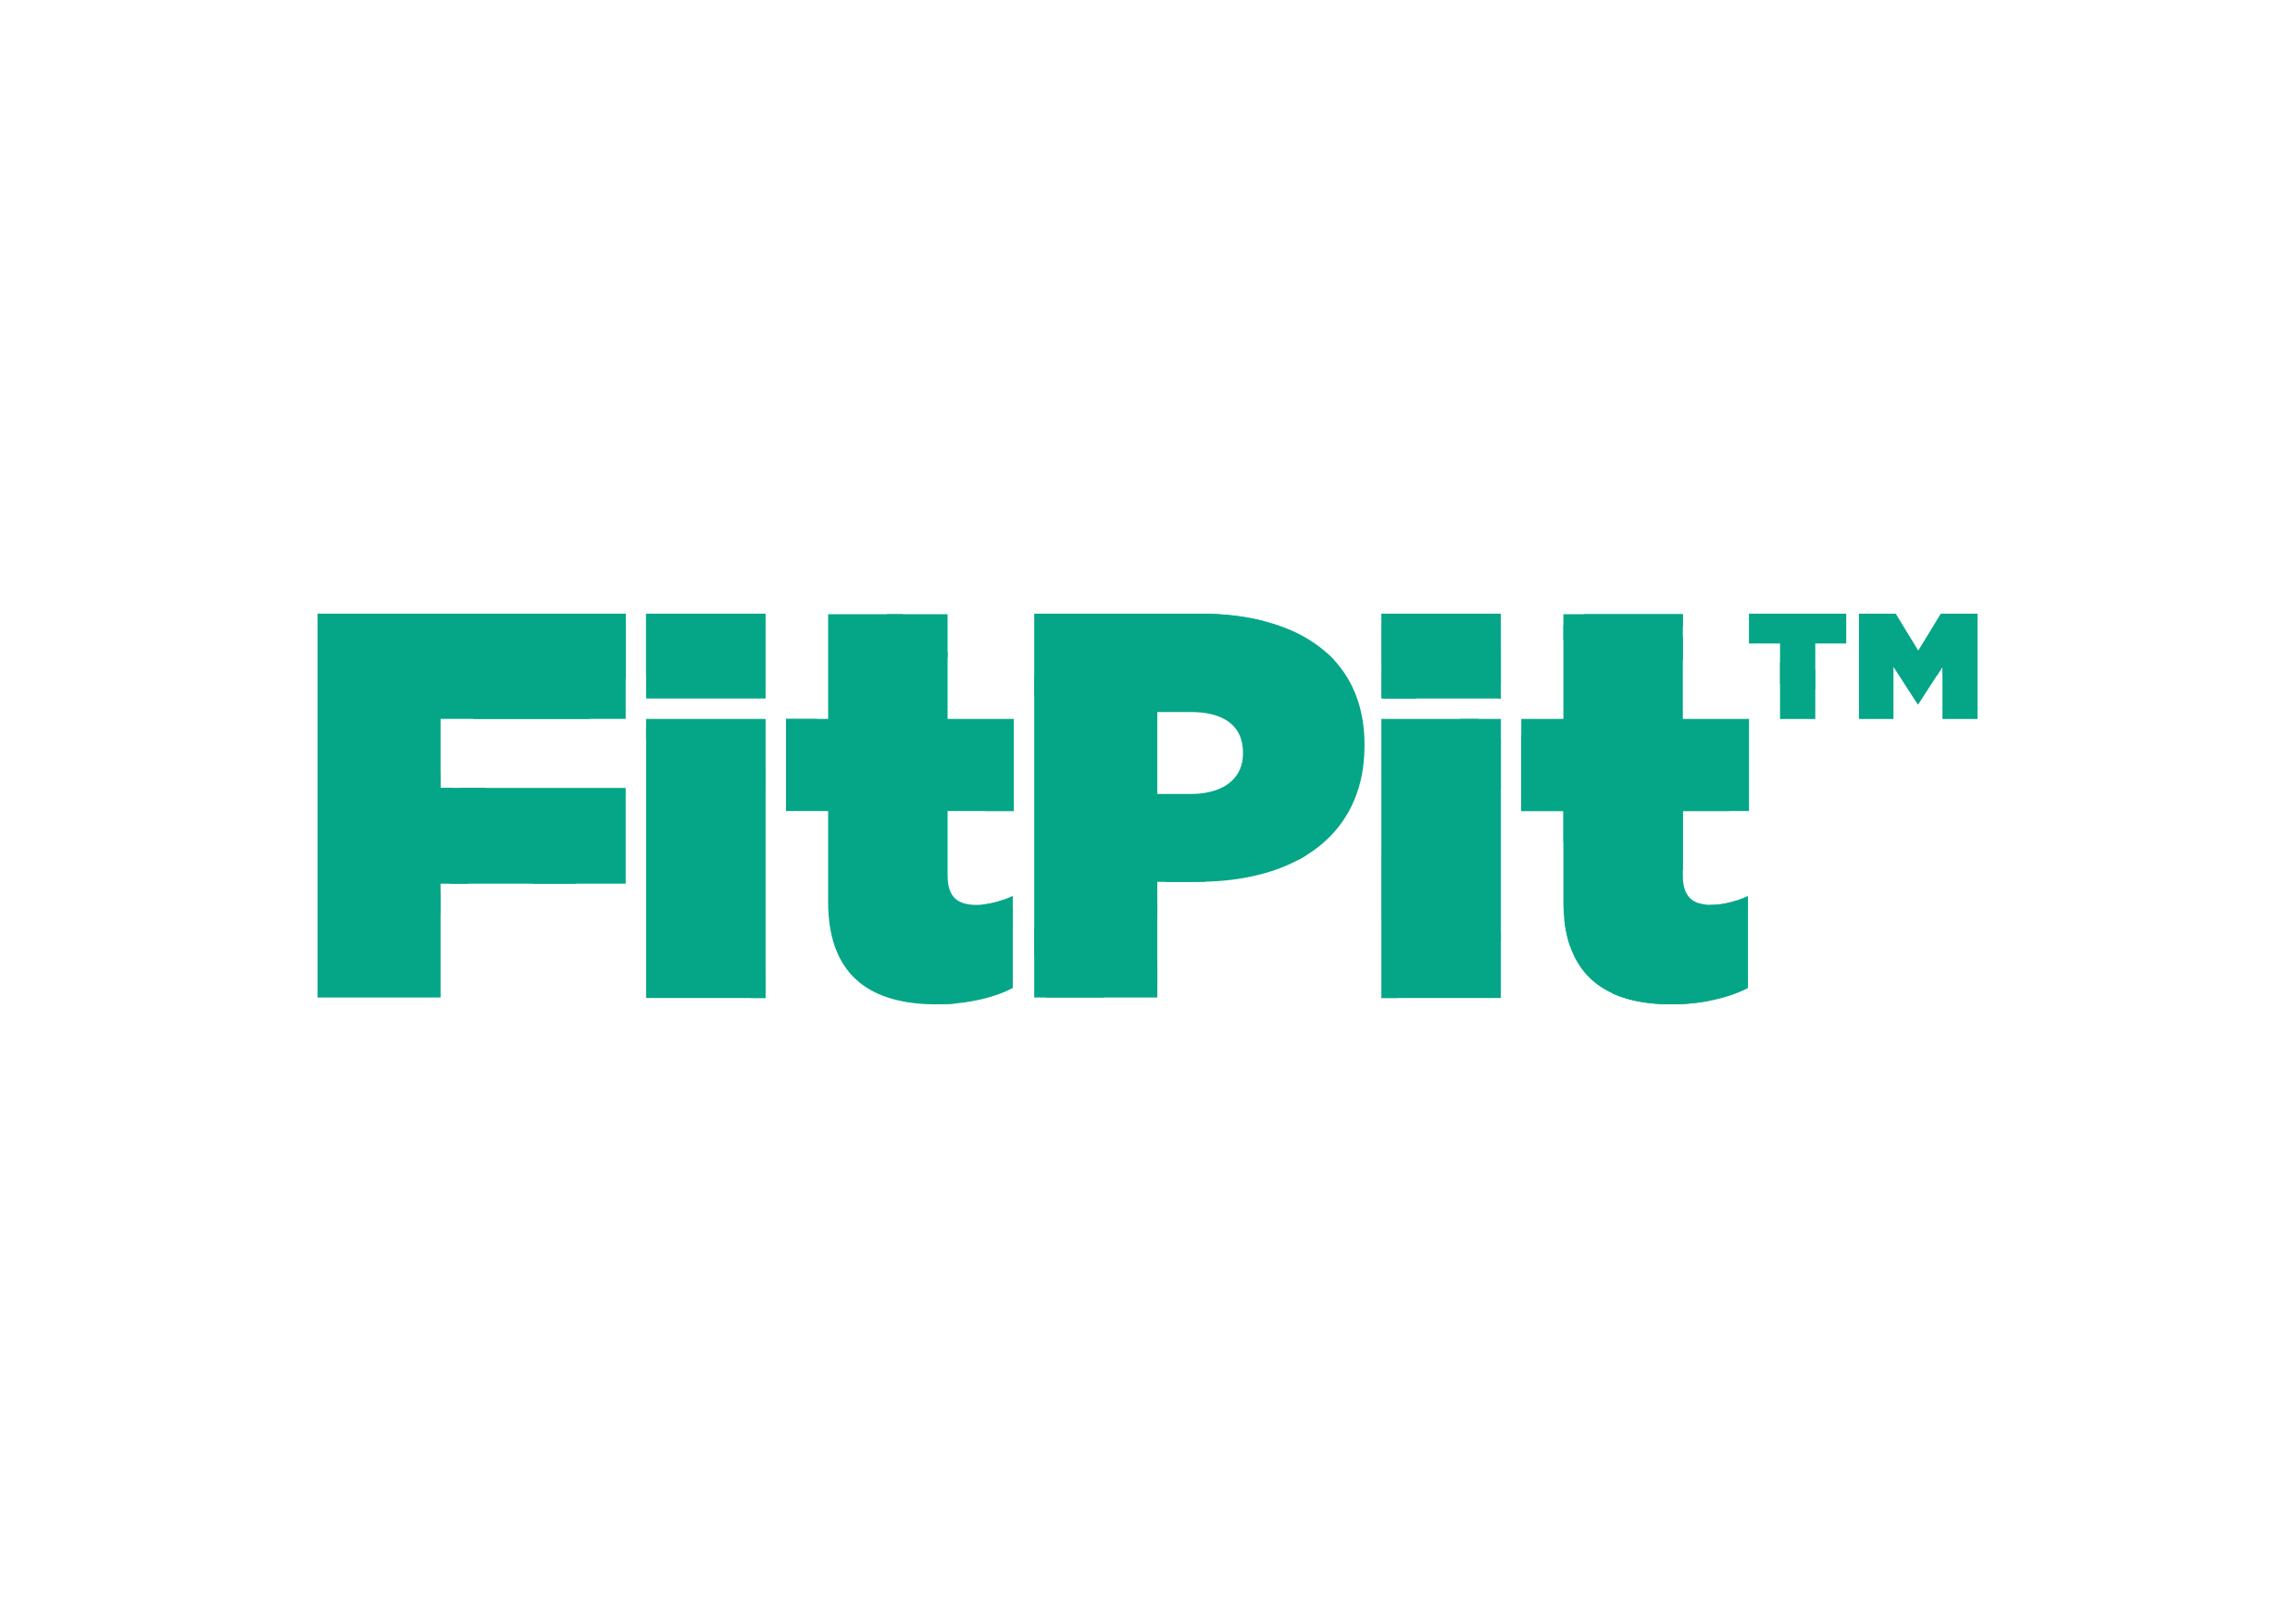 fitpit_logo_final_turquoise.png